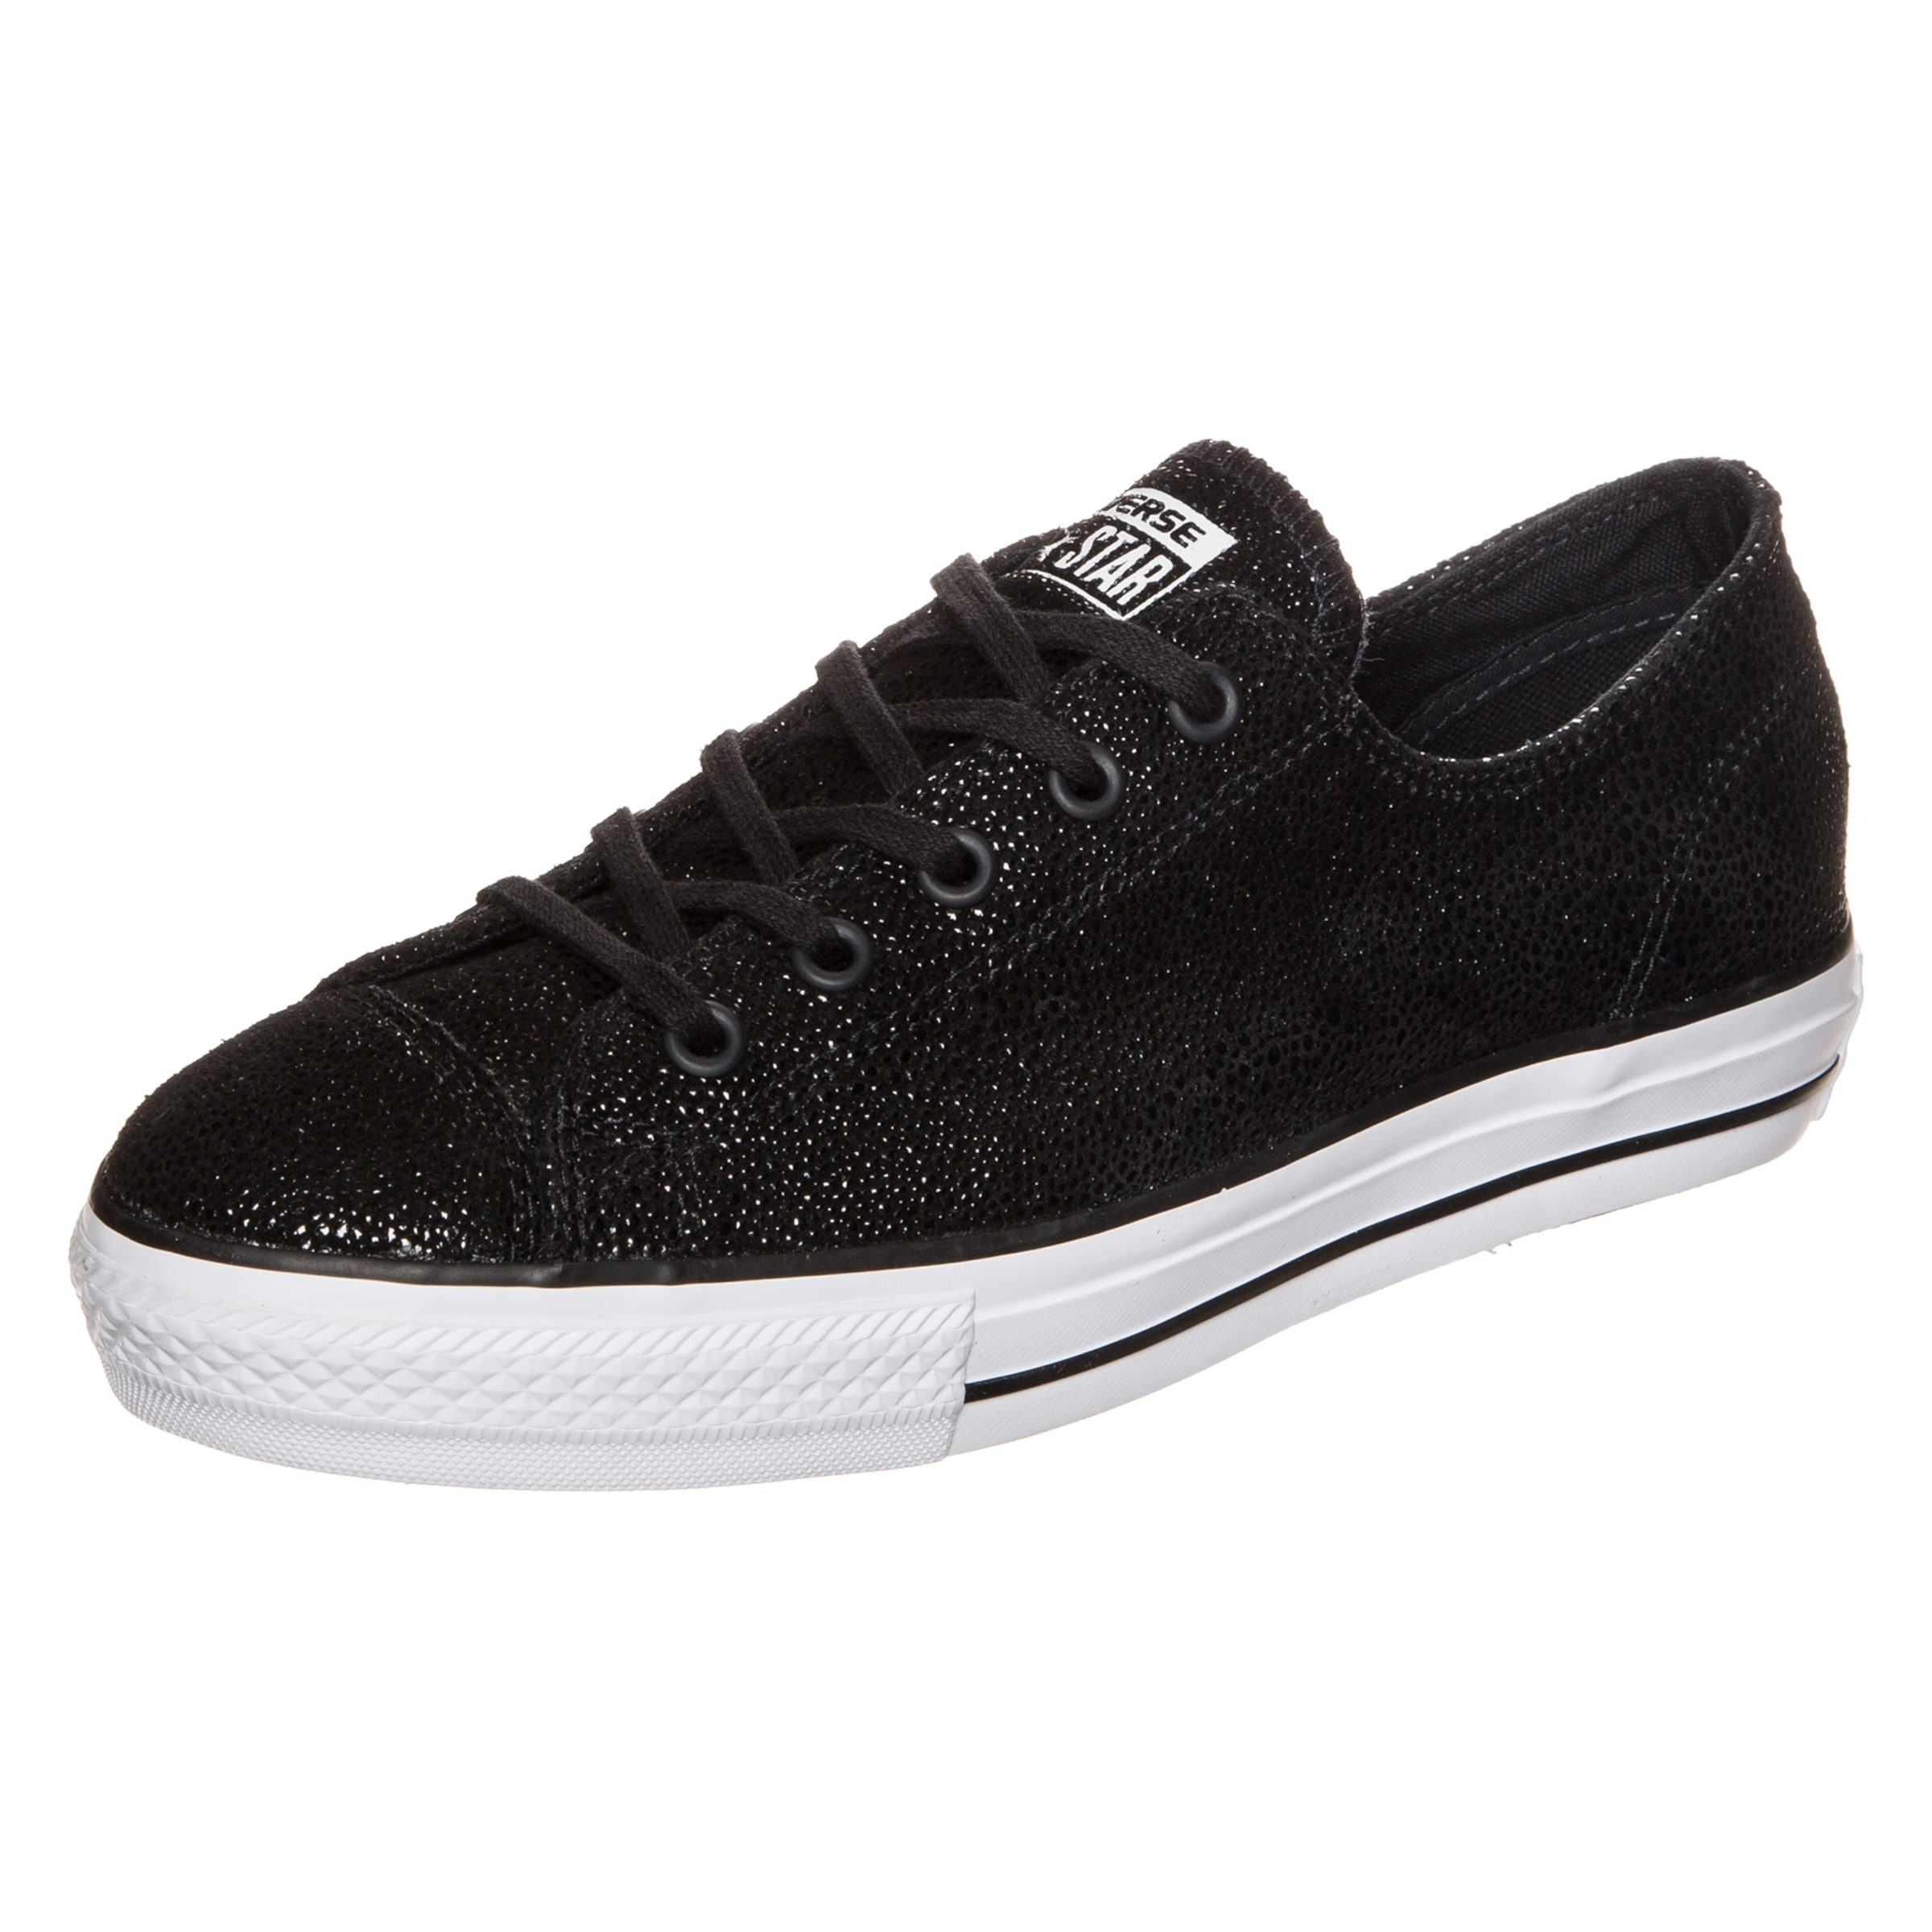 Converse Sneakers In Schwarz All High Line Chuck Taylor Star bv76gYfy